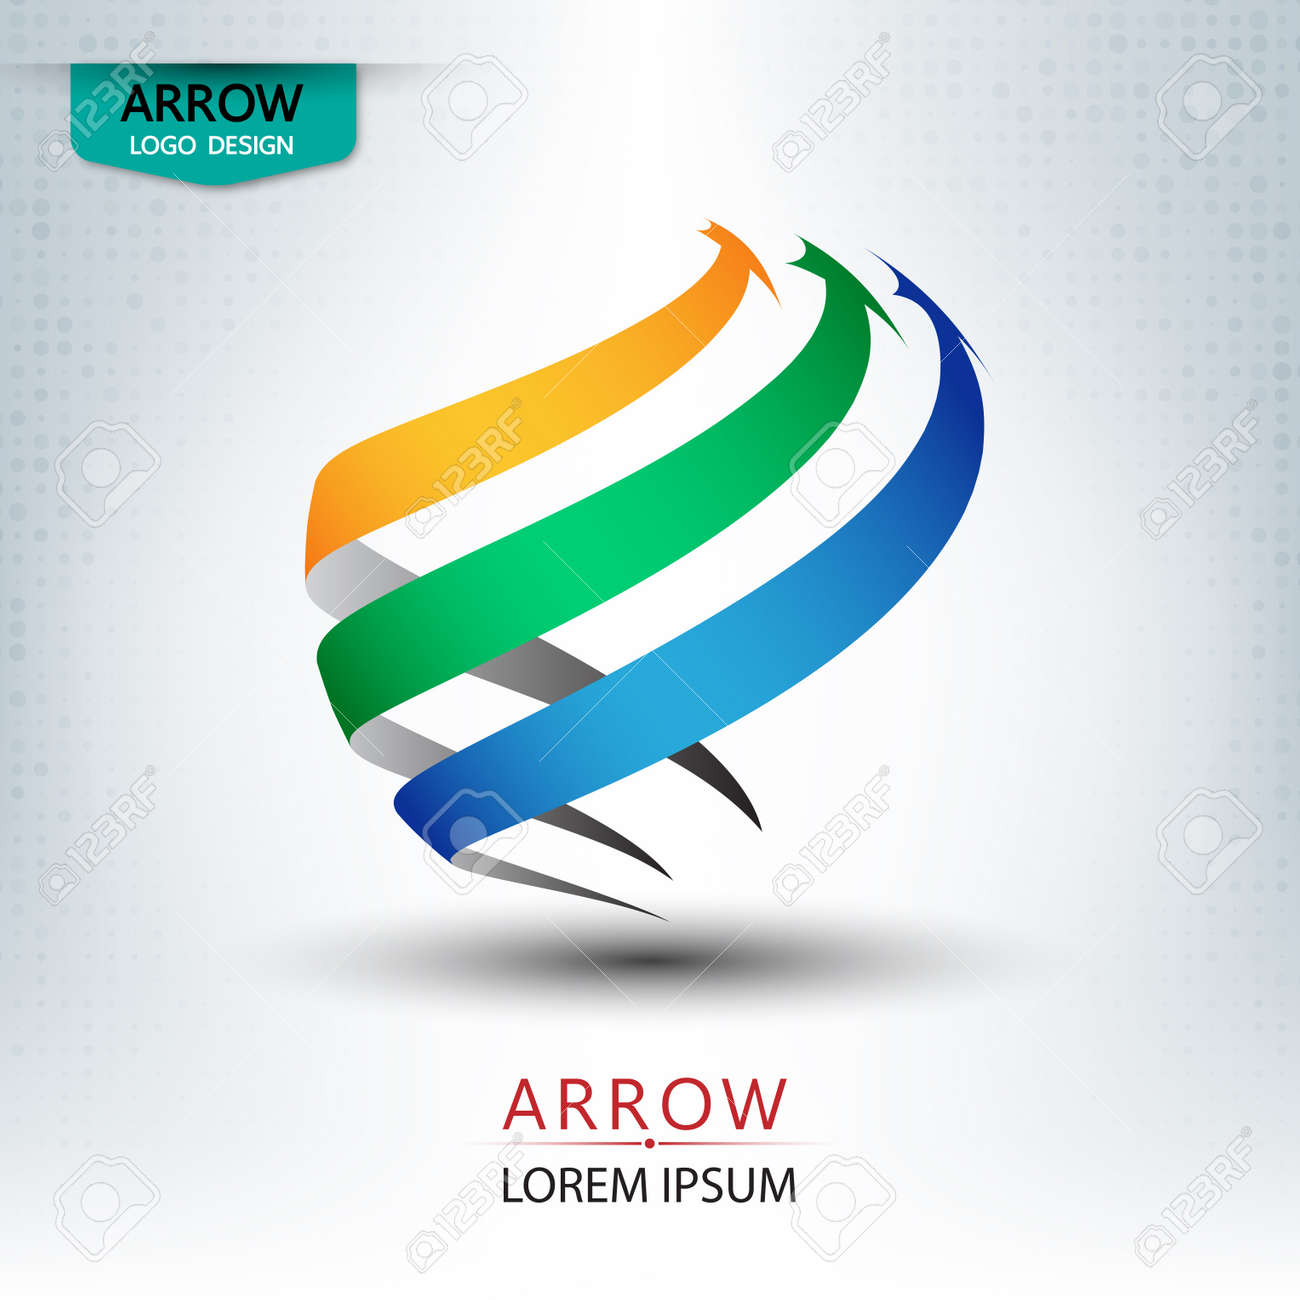 triple arrow logo design round shape vector illustration royalty